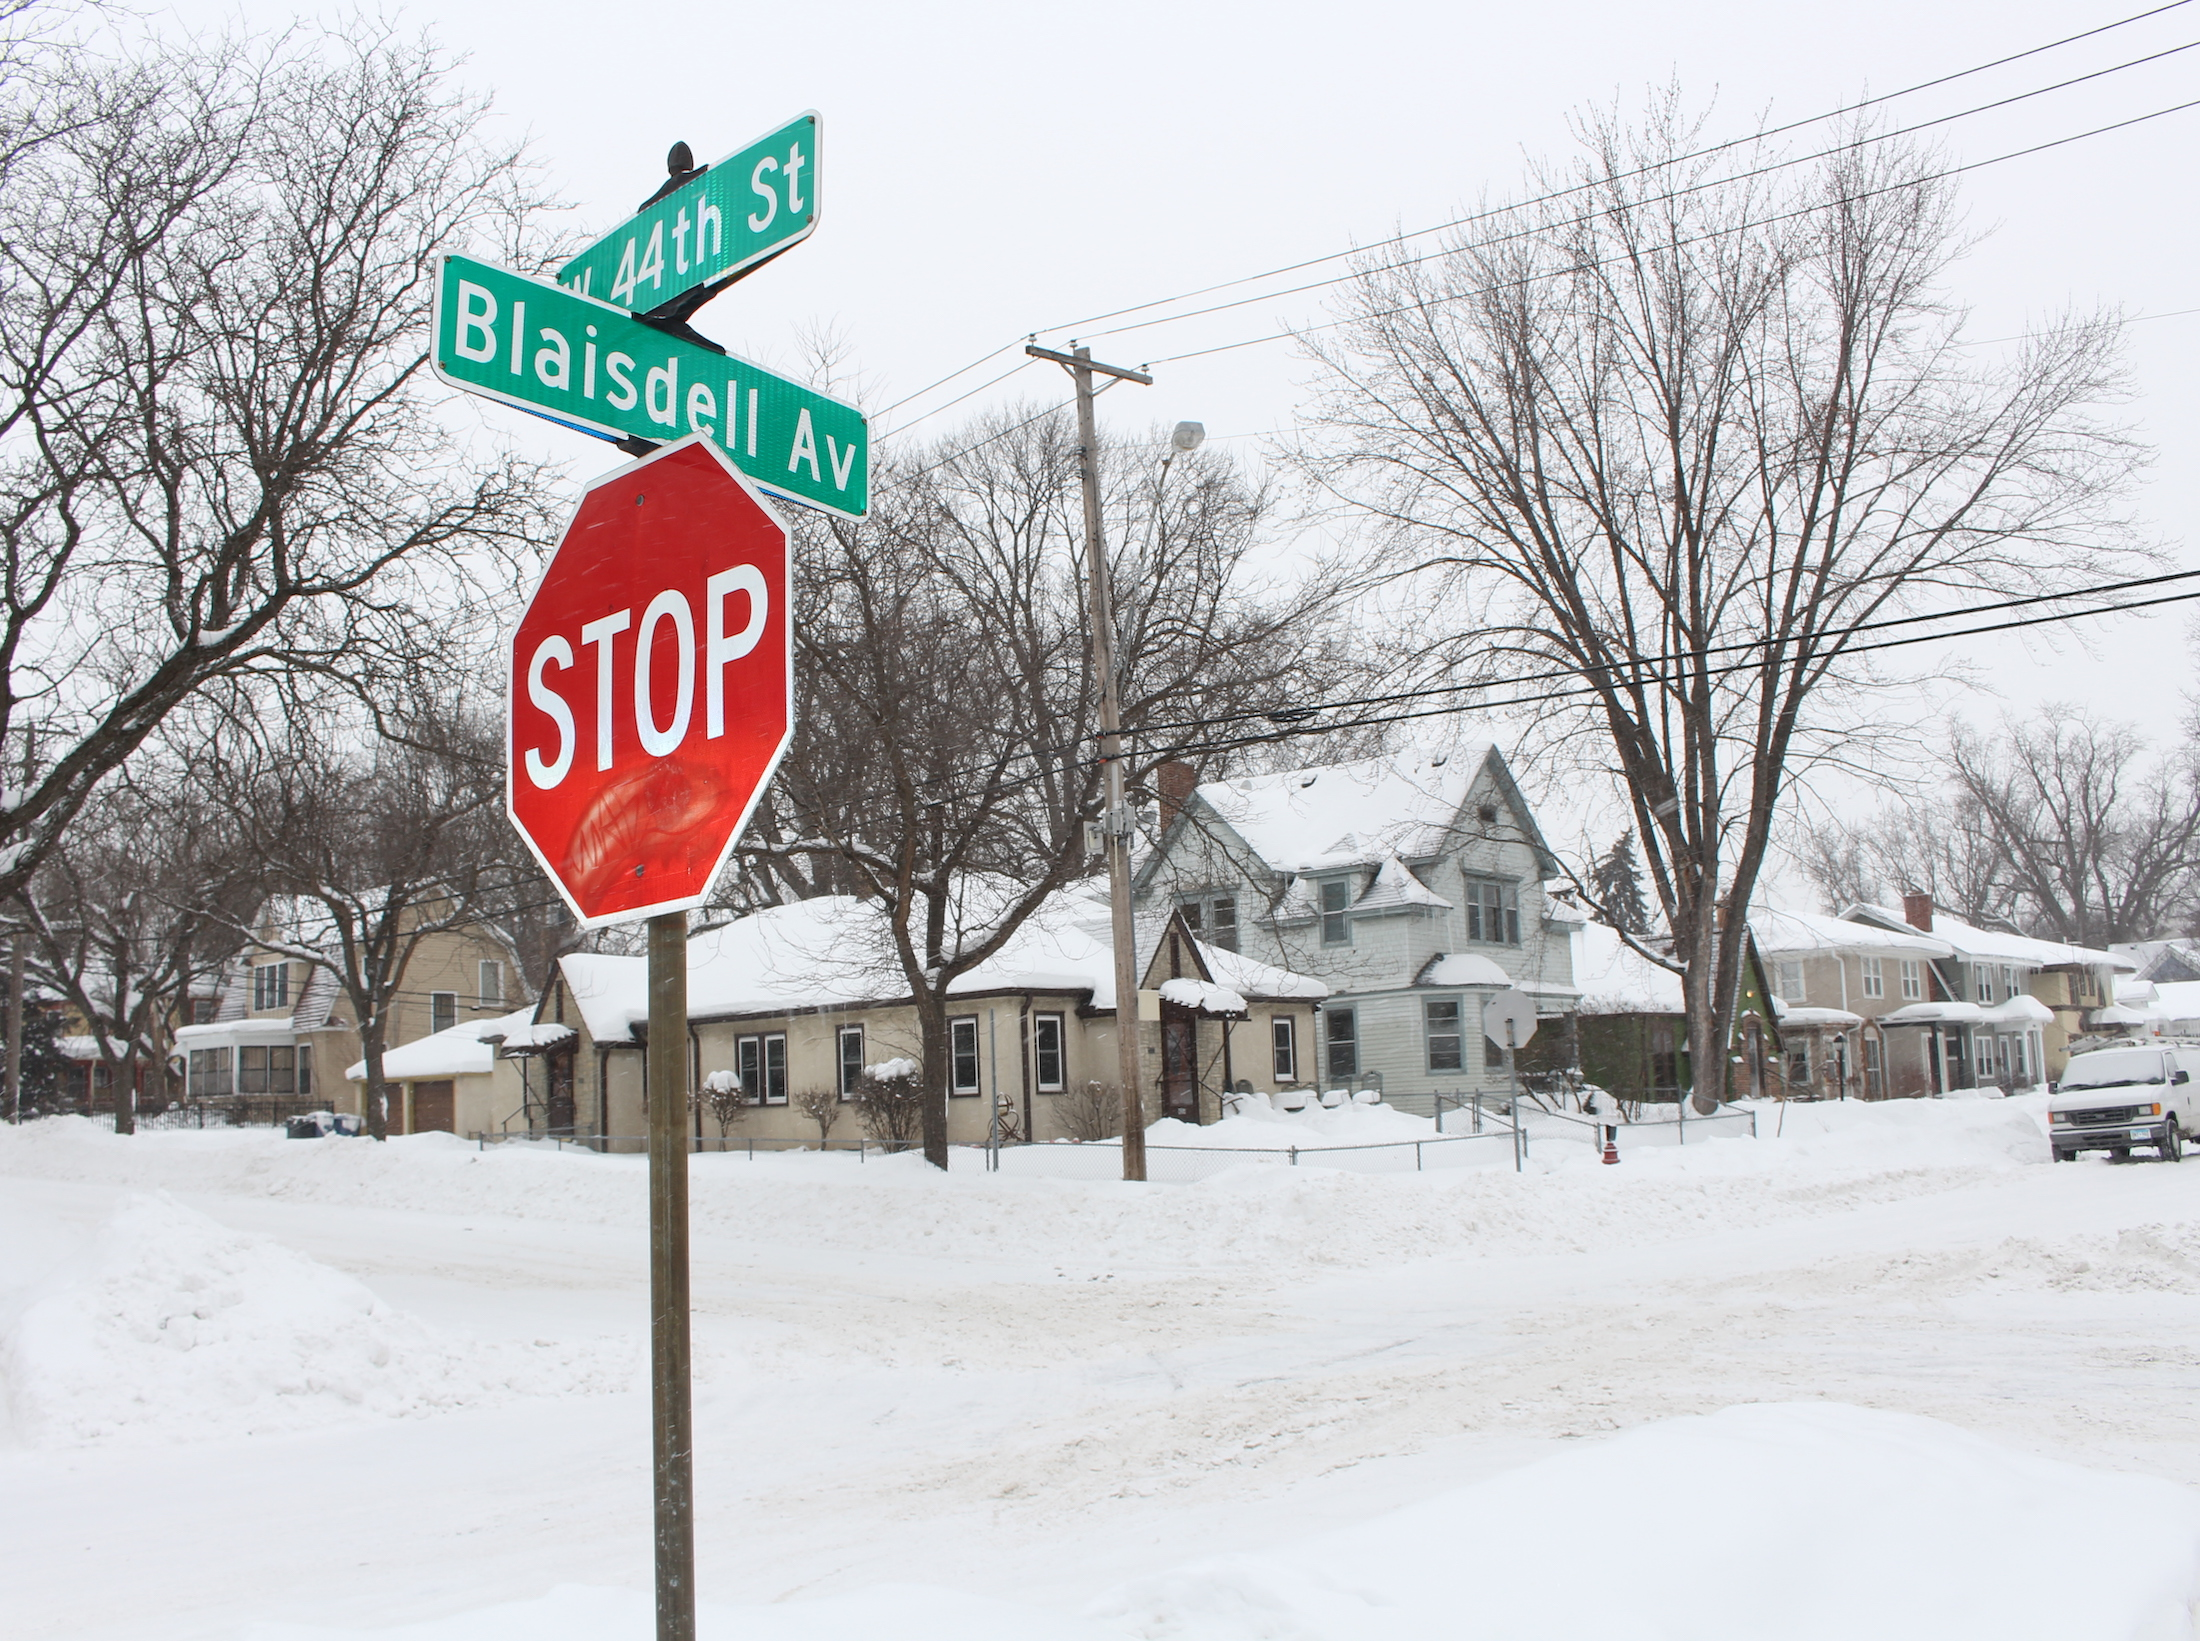 Two streets that will be part of the Kingfield resurfacing work include 44th Street and Blaisdell Avenue. Photo by Nate Gotlieb